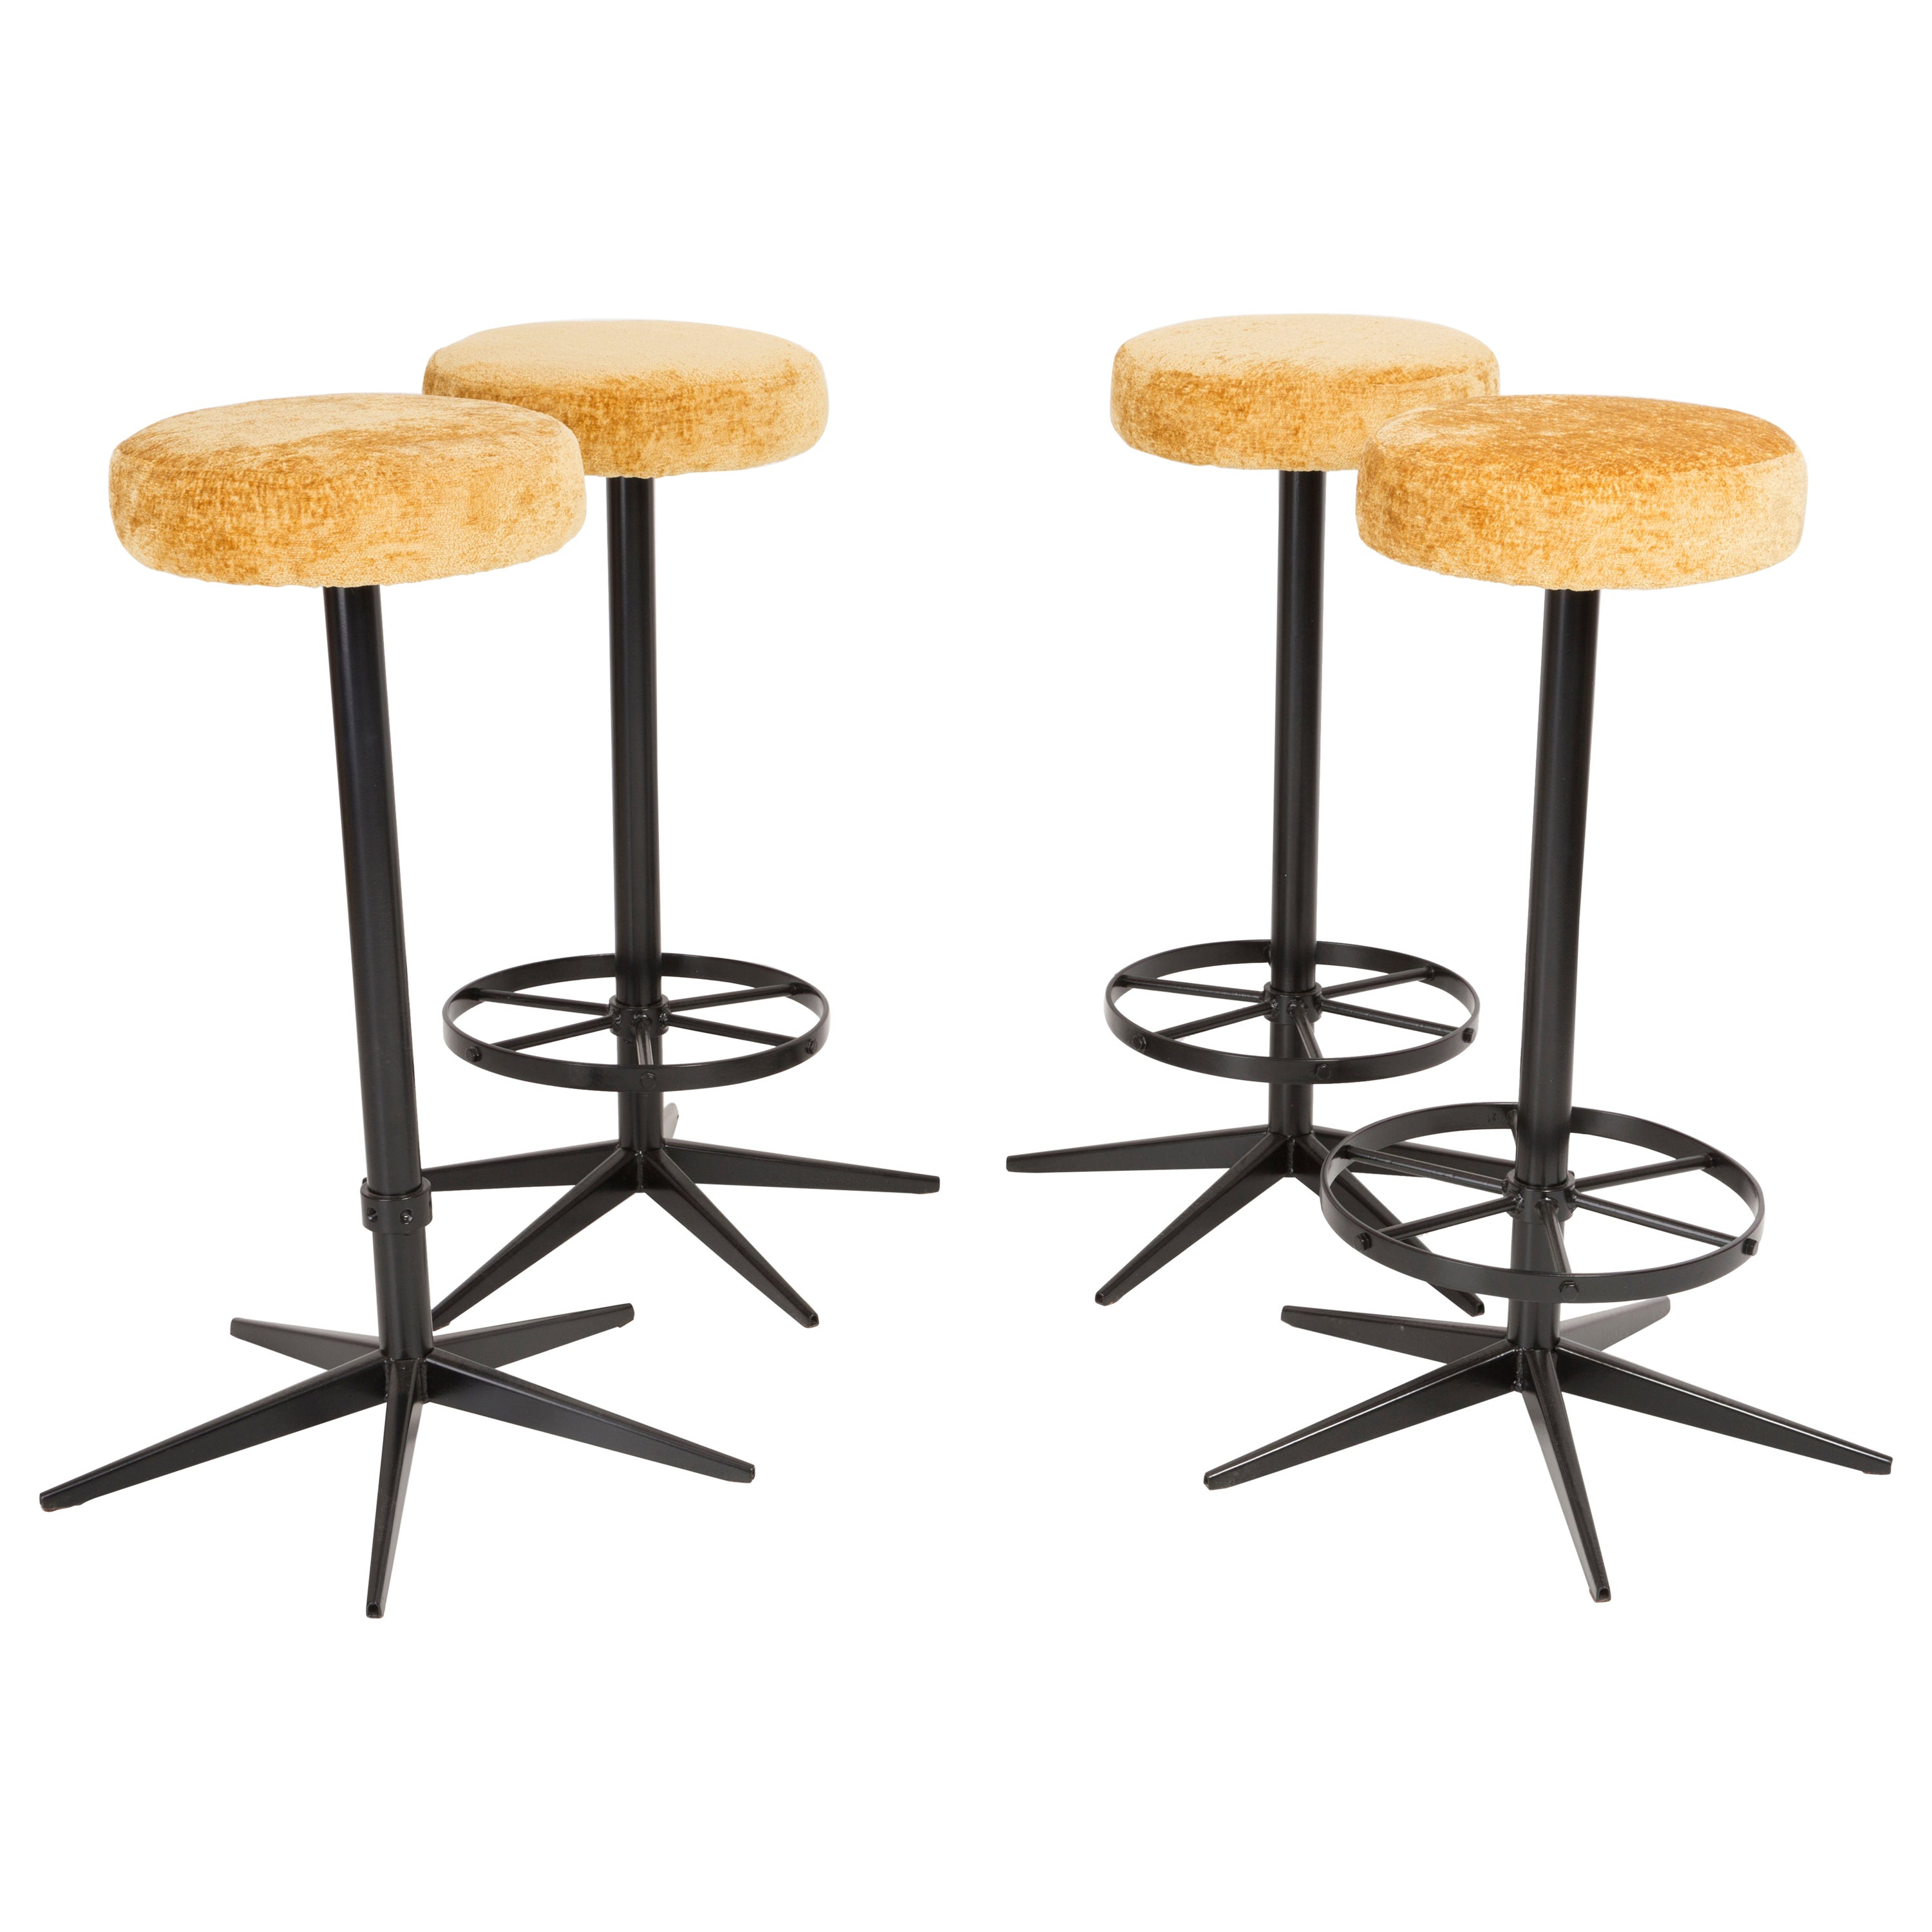 Set of Four Mid-Century Modern Yellow Bar Stools, 1960s